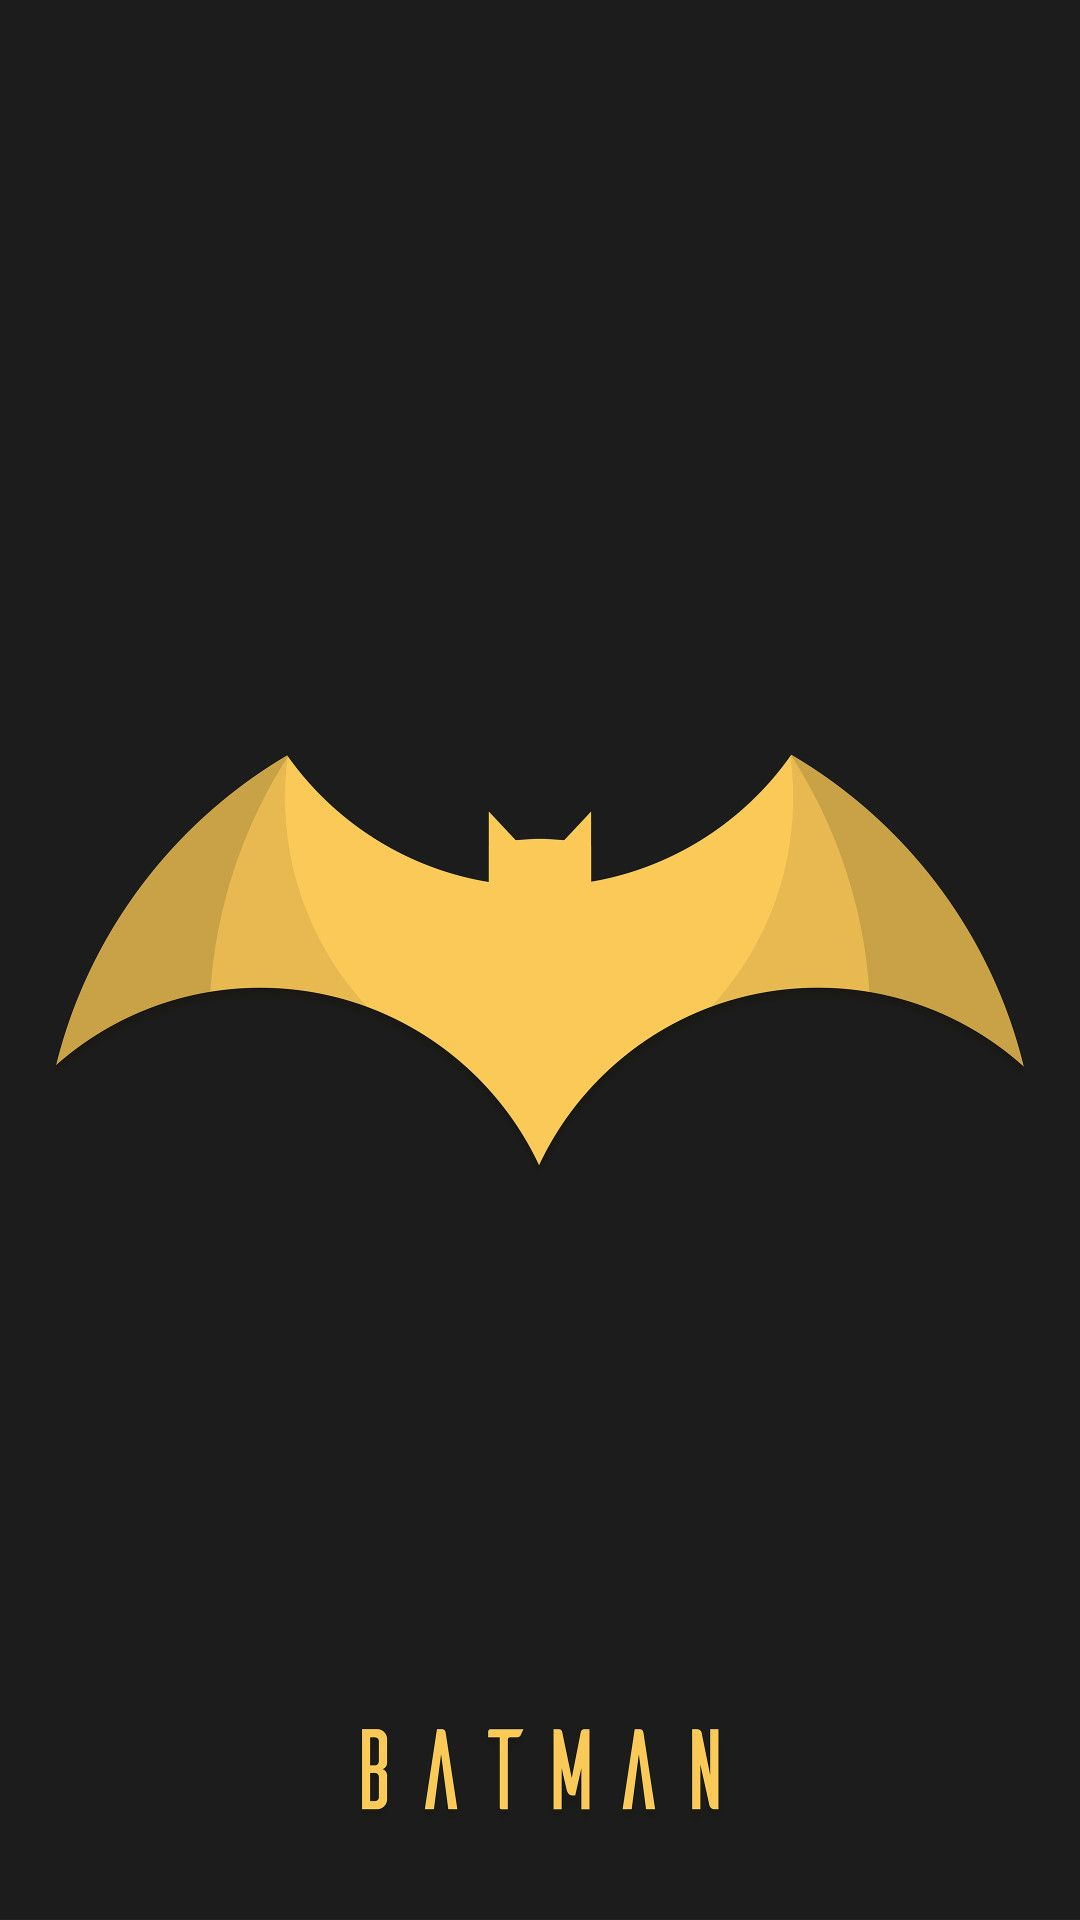 Batman Logo 4k Mobile Wallpaper Iphone Android Samsung Pixel Xiaomi In 2020 Batman Wallpaper Iphone Batman Wallpaper Logo Wallpaper Hd